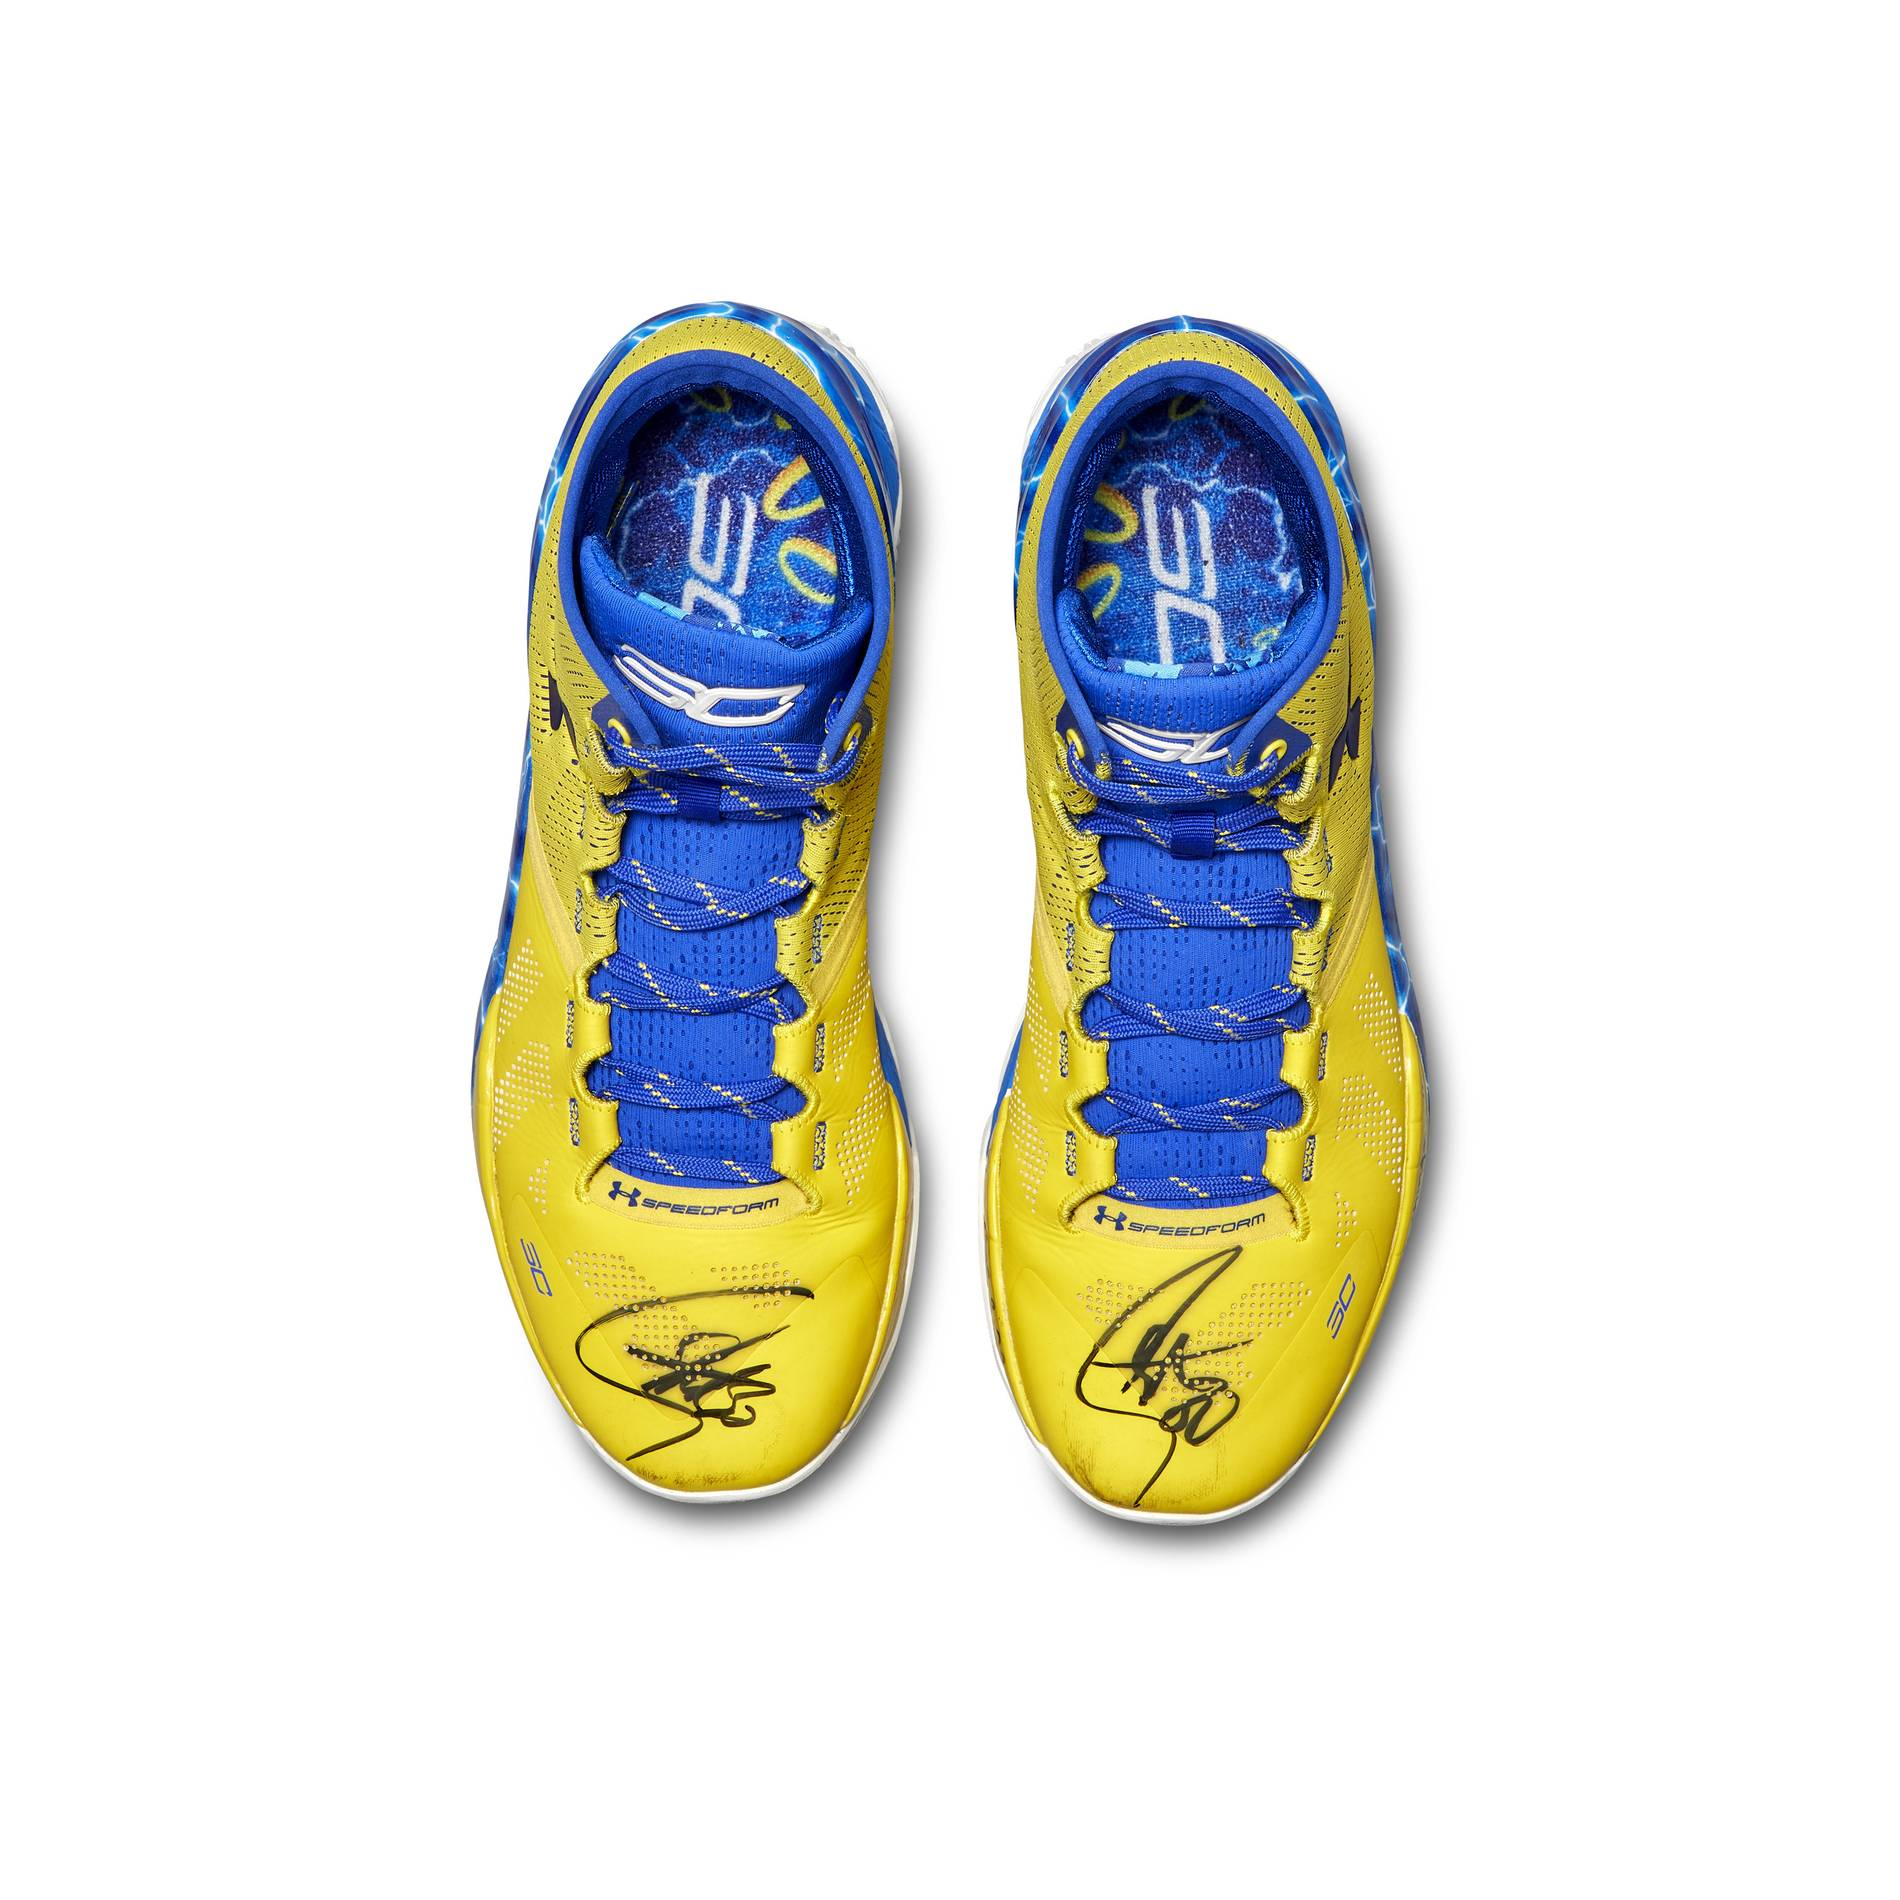 steph curry sothebys signed